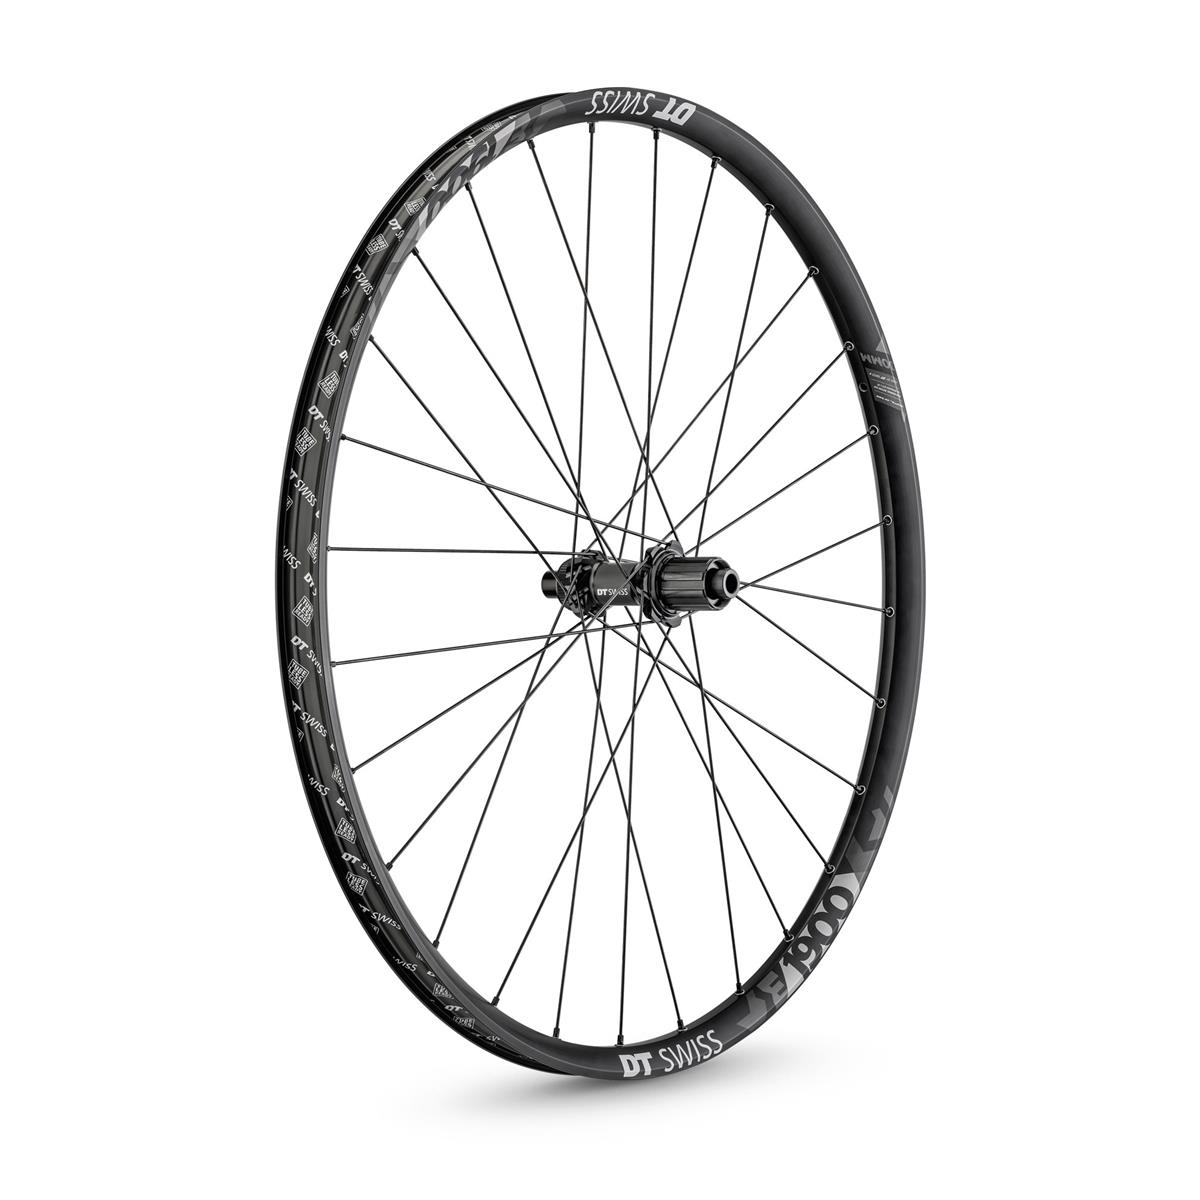 dt swiss wheel e 1900 spline rear 29 inches 12x142 mm ta shimano 106Mm Recoilless Rifle questions about this article